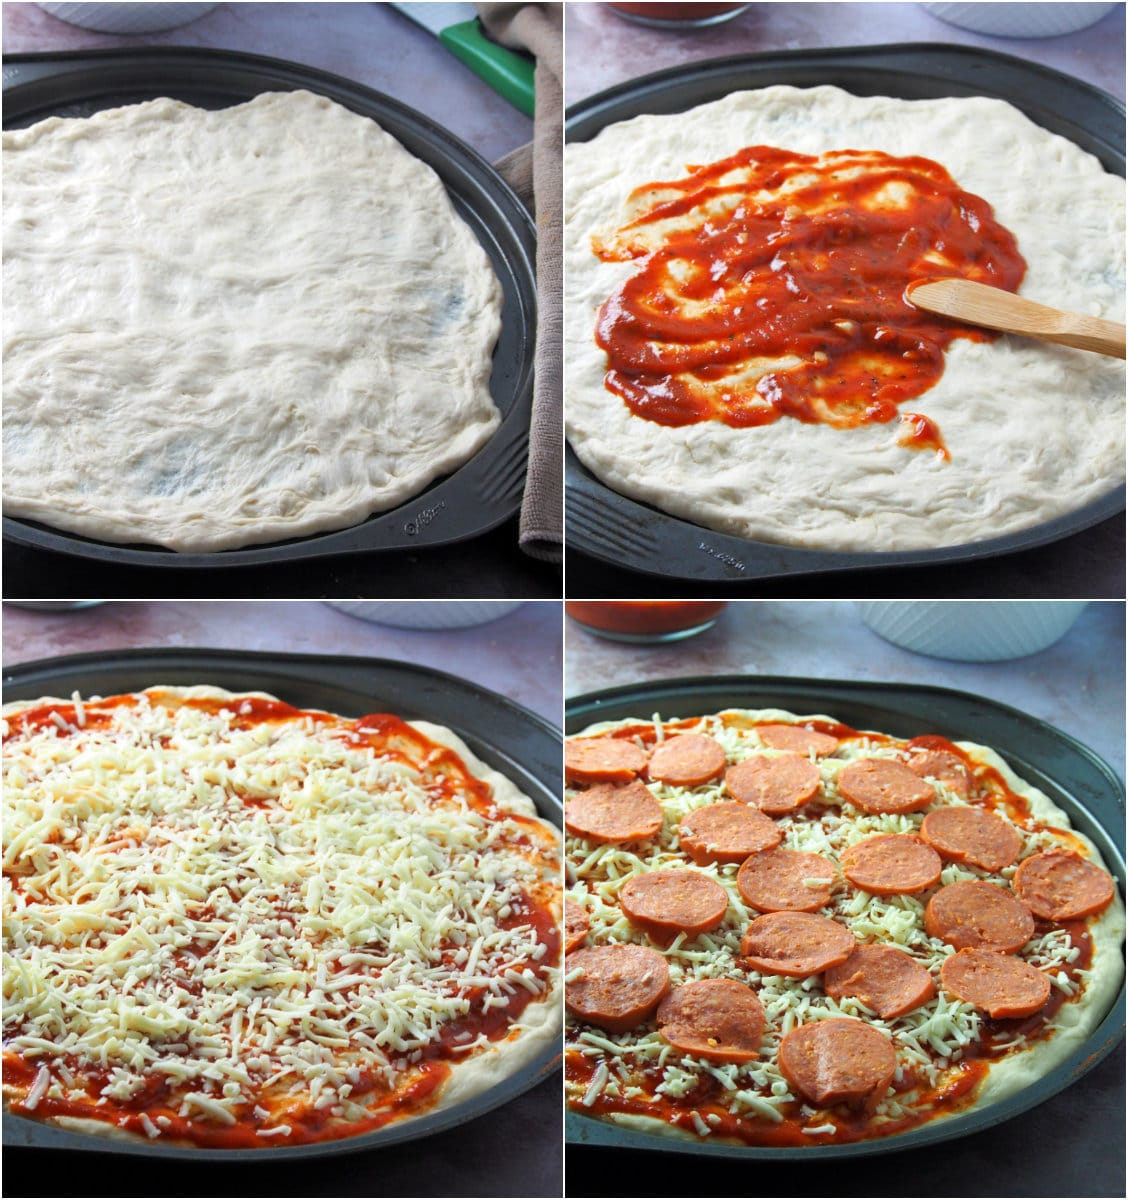 A collage showing the assembly of pepperoni pizza.